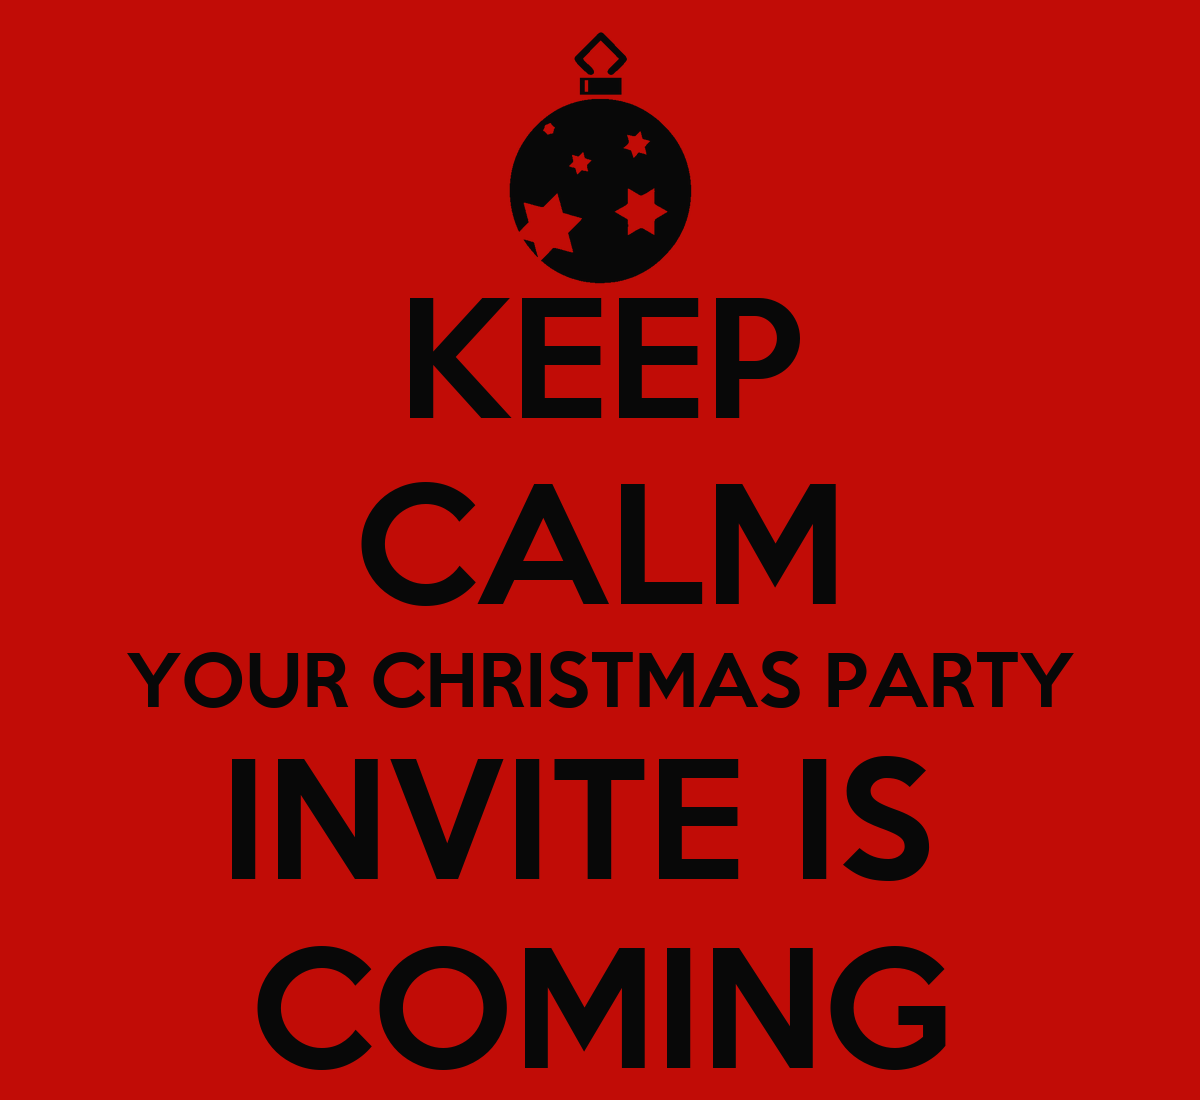 KEEP CALM YOUR CHRISTMAS PARTY INVITE IS COMING Poster Michelle Keep Calm.